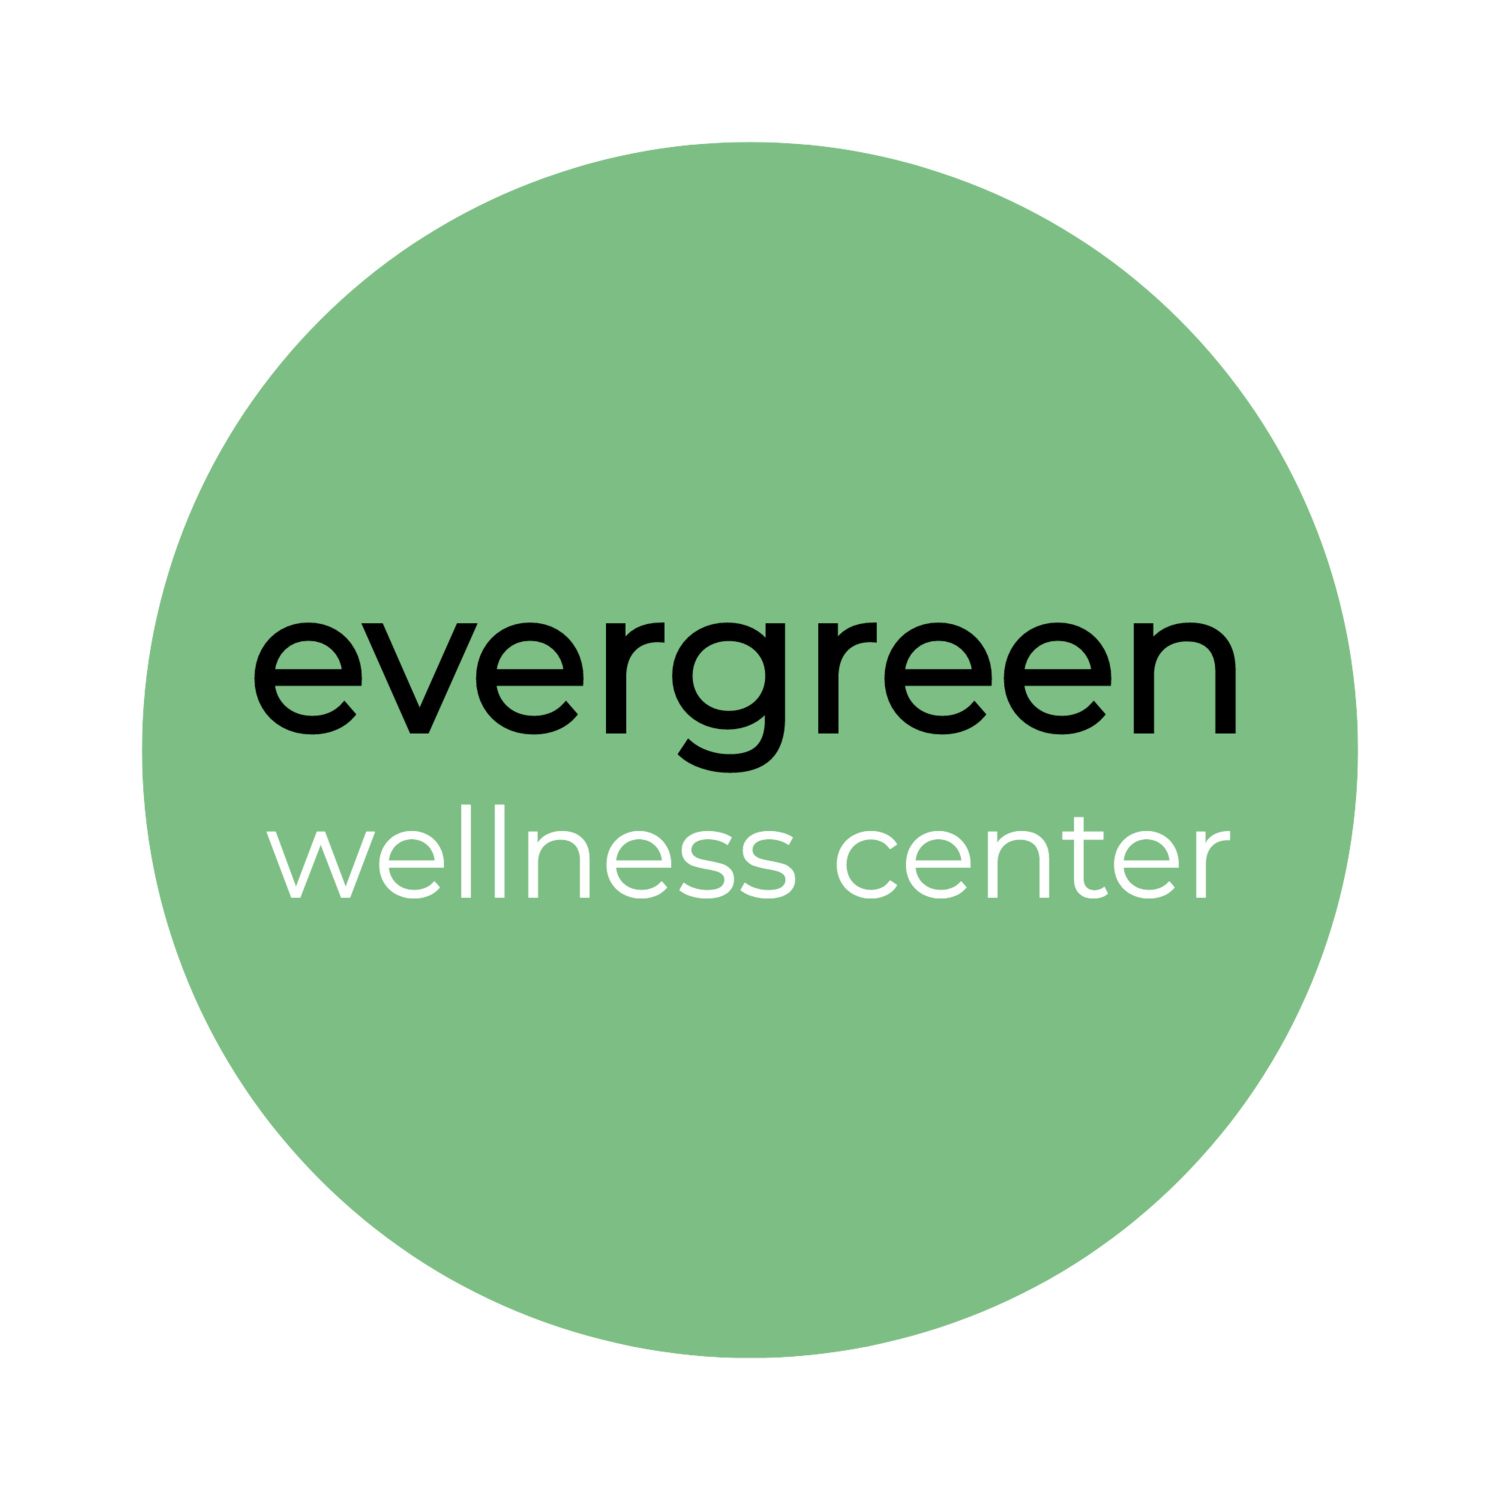 Evergreen Wellness Center